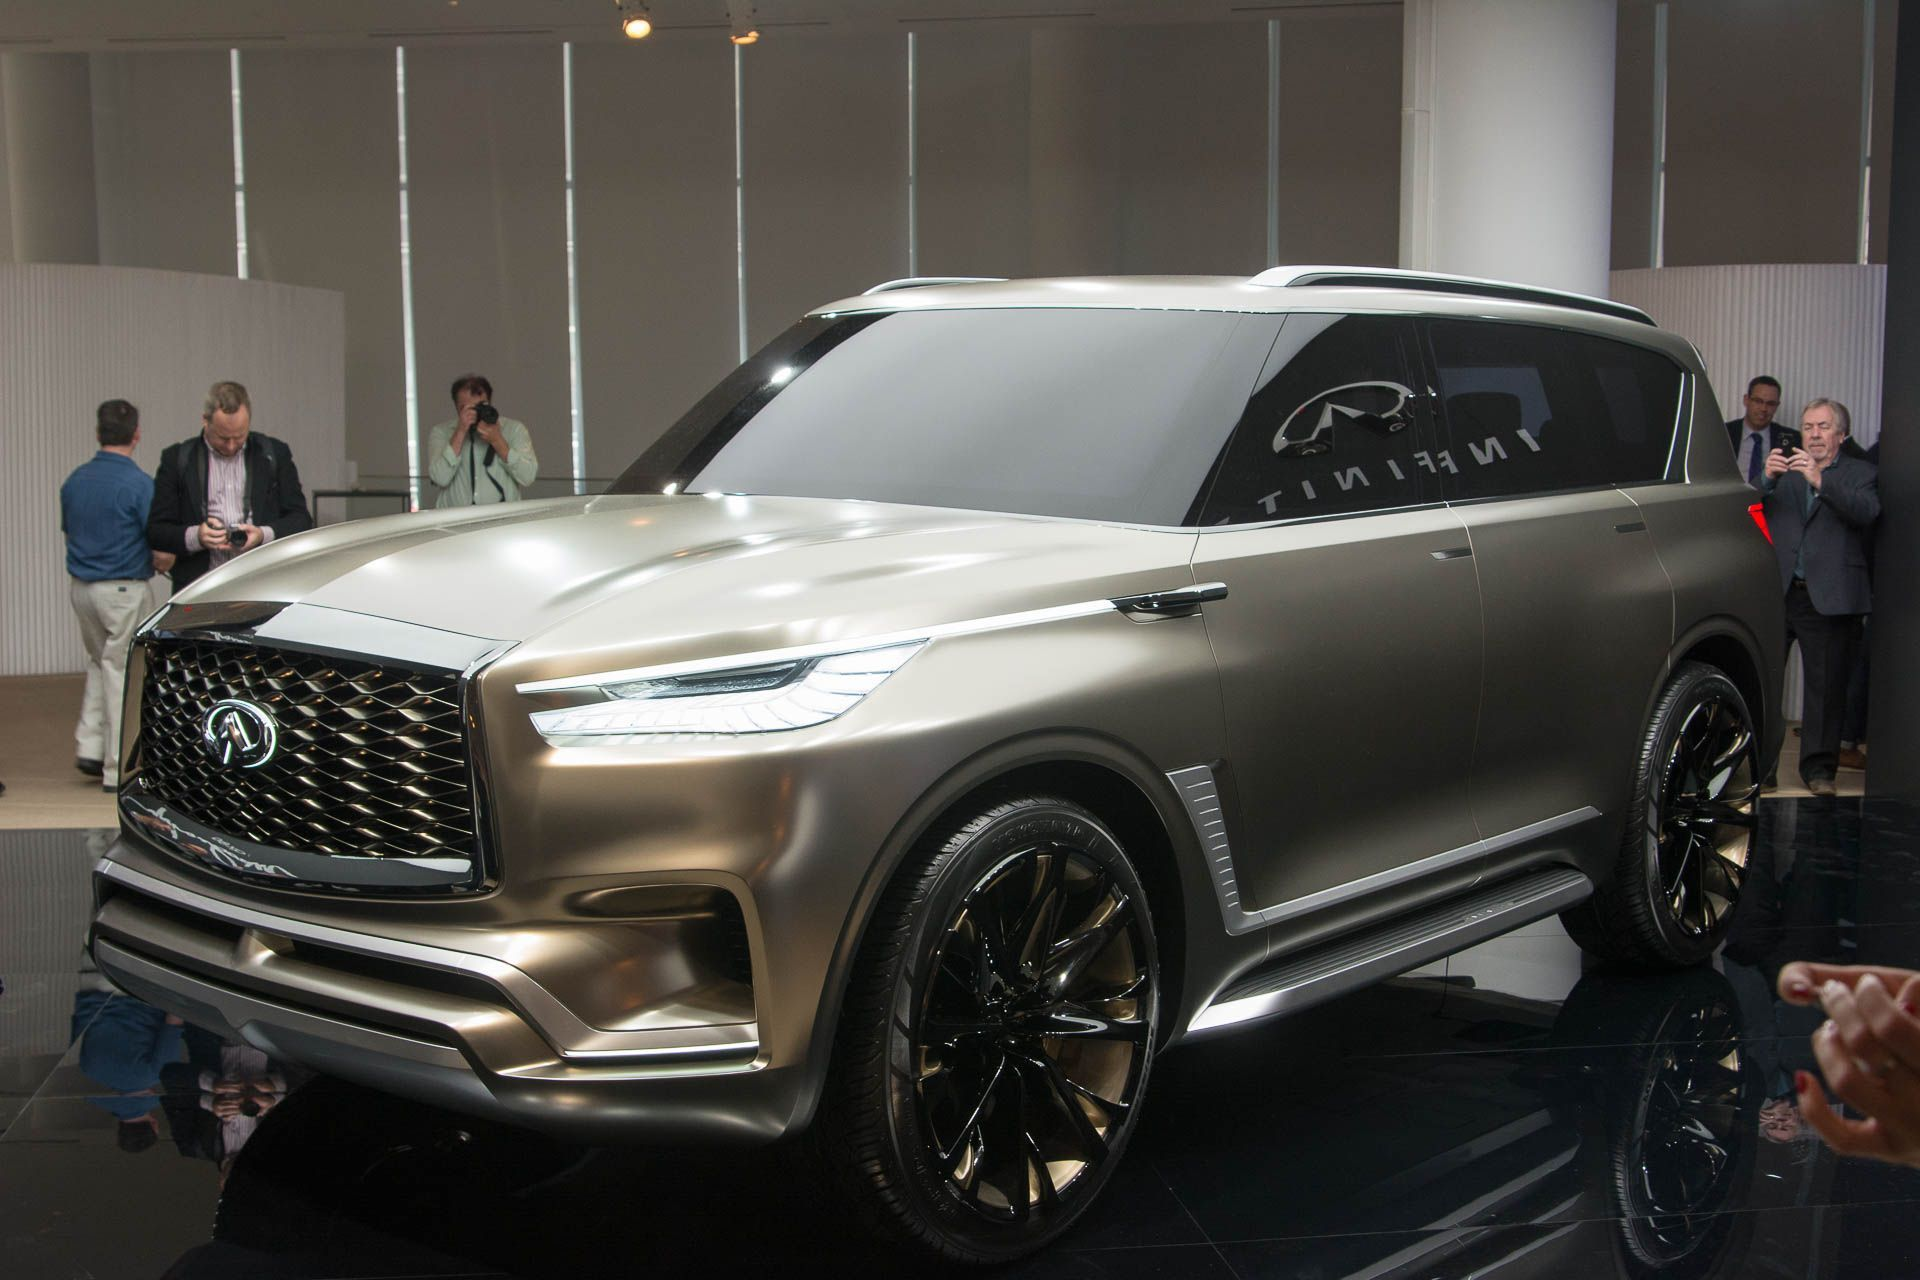 2021 Infiniti Qx80 New Physique Type Specs And Evaluation In 2020 Luxury Suv New Infiniti Infiniti Fx35